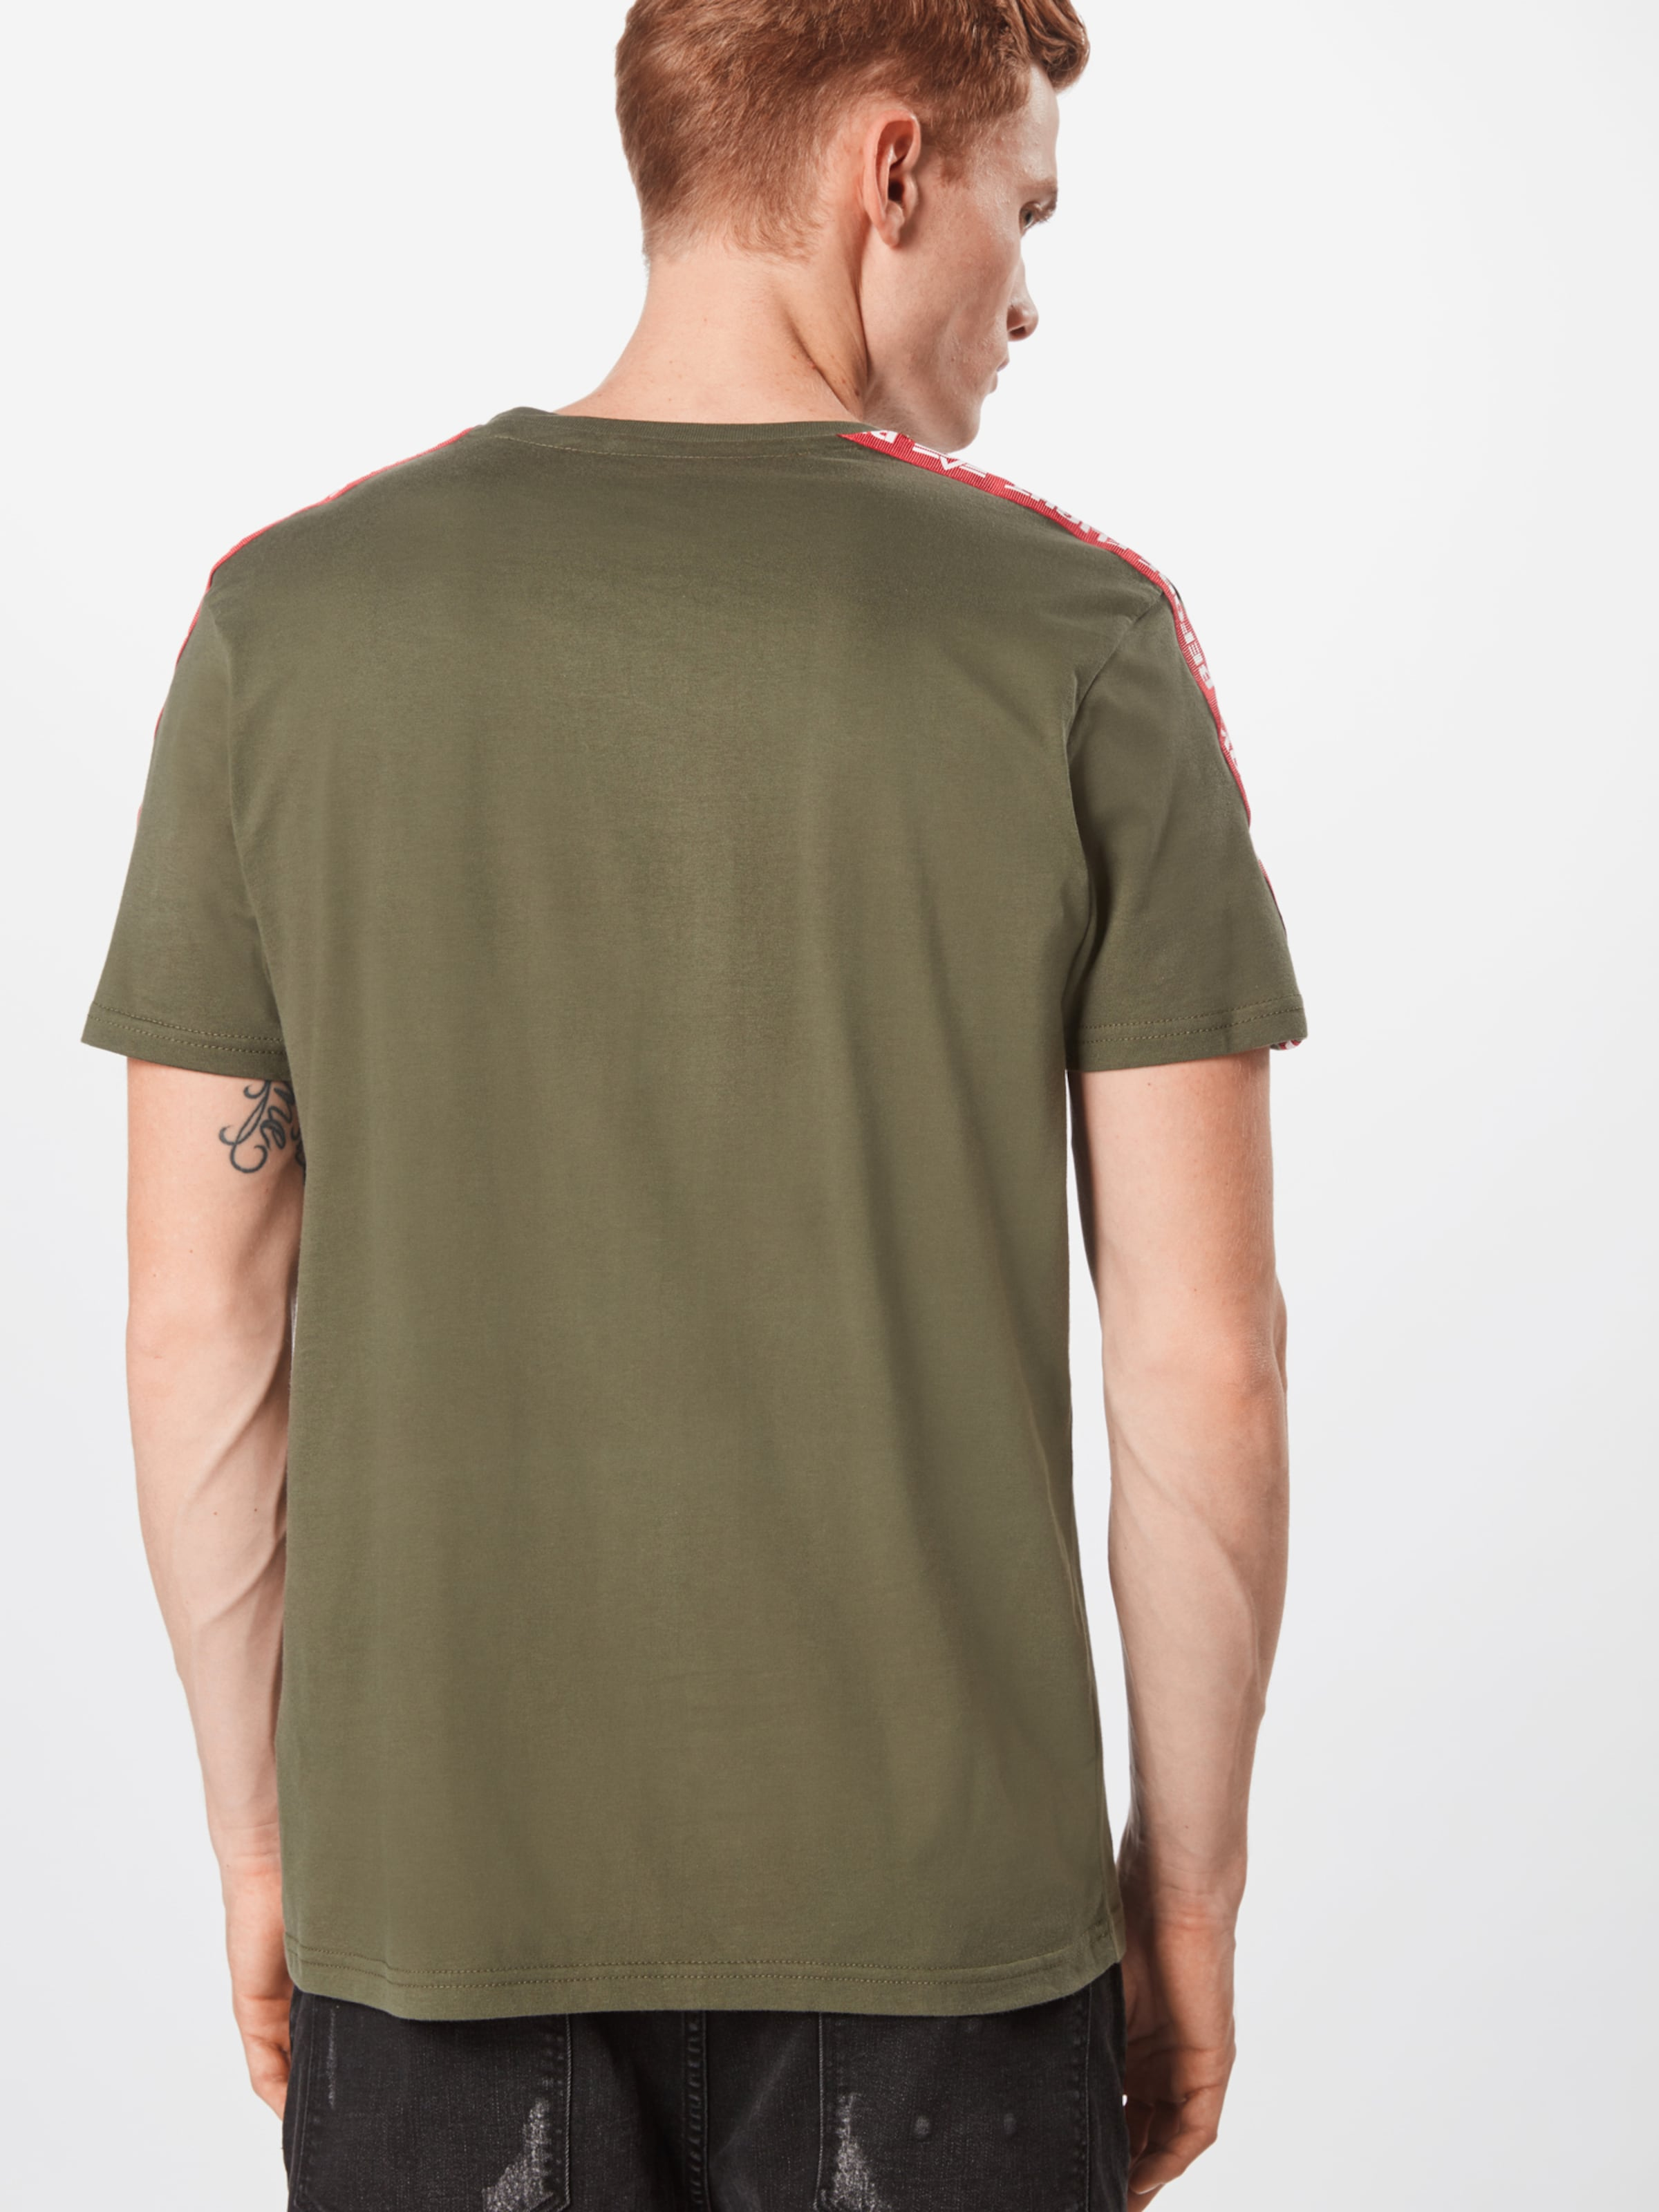 En Industries 'rbf shirt Tape T' Alpha Olive T xodWBeCr